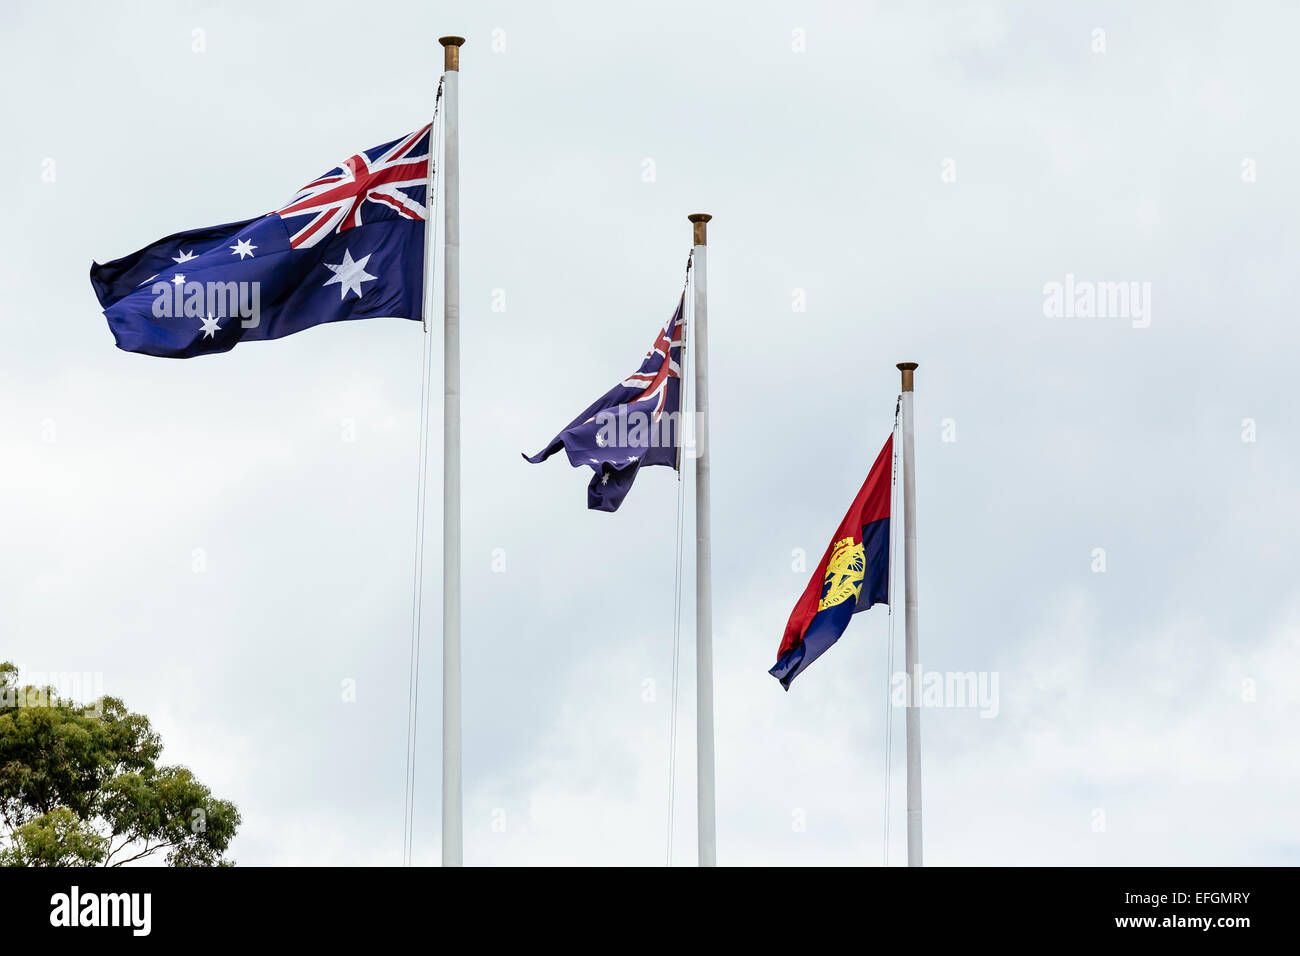 Australian, Victorian and RSL flags flying at Shrine of Remembrance, Melbourne, Victoria, Australia - Stock Image